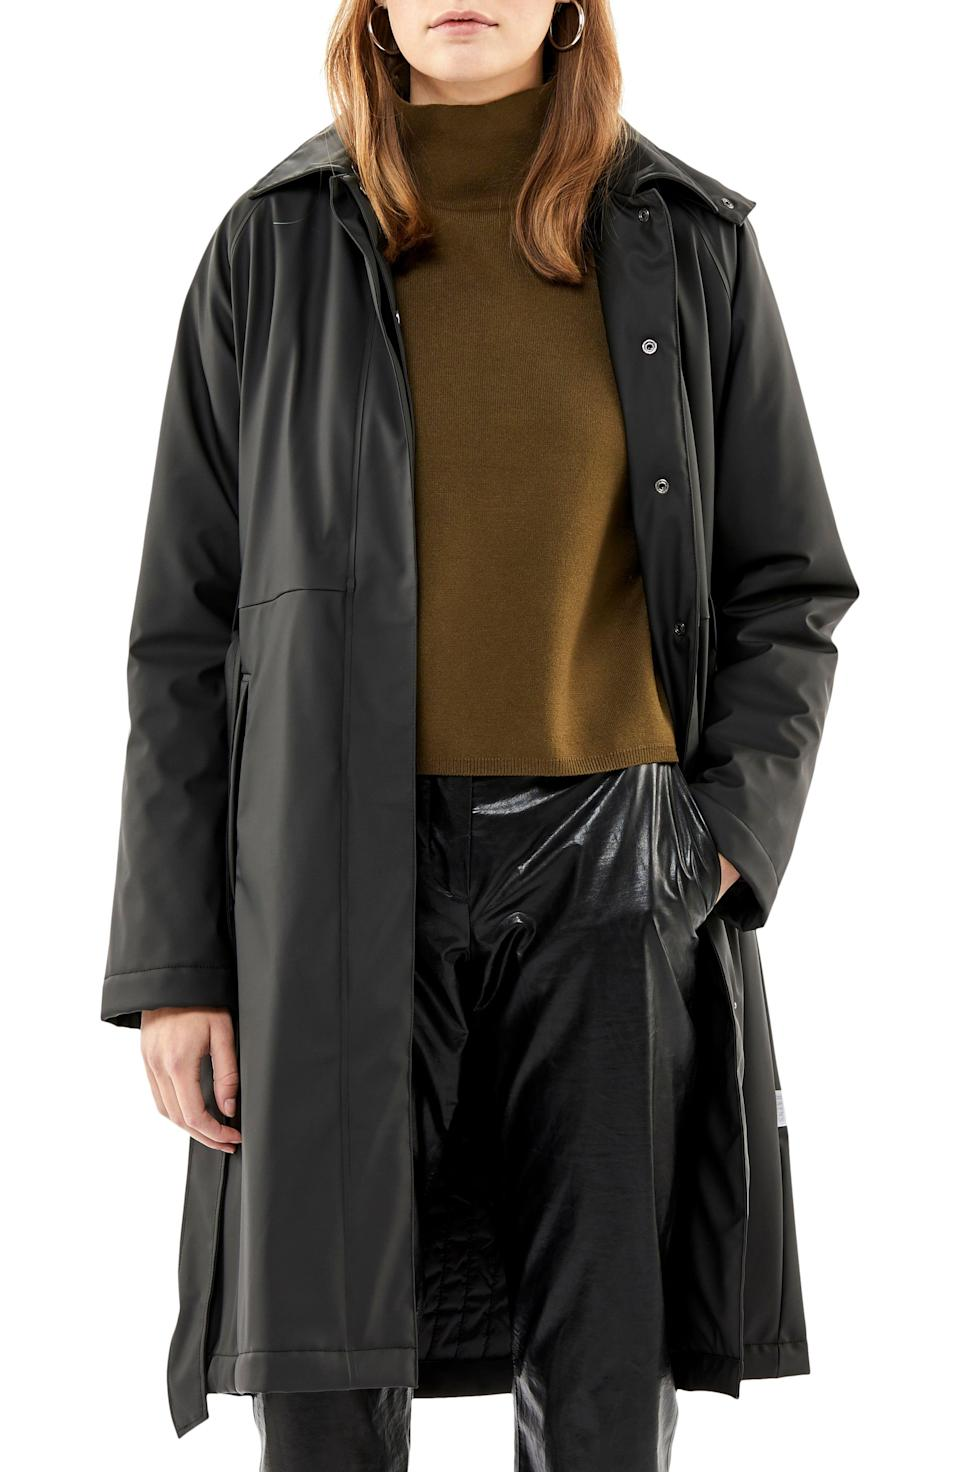 """<p><strong>RAINS</strong></p><p>nordstrom.com</p><p><strong>$120.00</strong></p><p><a href=""""https://go.redirectingat.com?id=74968X1596630&url=https%3A%2F%2Fshop.nordstrom.com%2Fs%2Frains-waterproof-trench-coat-with-detectable-hood%2F5354003&sref=https%3A%2F%2Fwww.cosmopolitan.com%2Fstyle-beauty%2Ffashion%2Fg32950282%2Fcute-rainy-day-outfit-ideas%2F"""" rel=""""nofollow noopener"""" target=""""_blank"""" data-ylk=""""slk:Shop Now"""" class=""""link rapid-noclick-resp"""">Shop Now</a></p><p>A classic long black raincoat always looks good. Wear it over a knit sweater and shiny patent leather pants for a subtle yet standout look. </p>"""